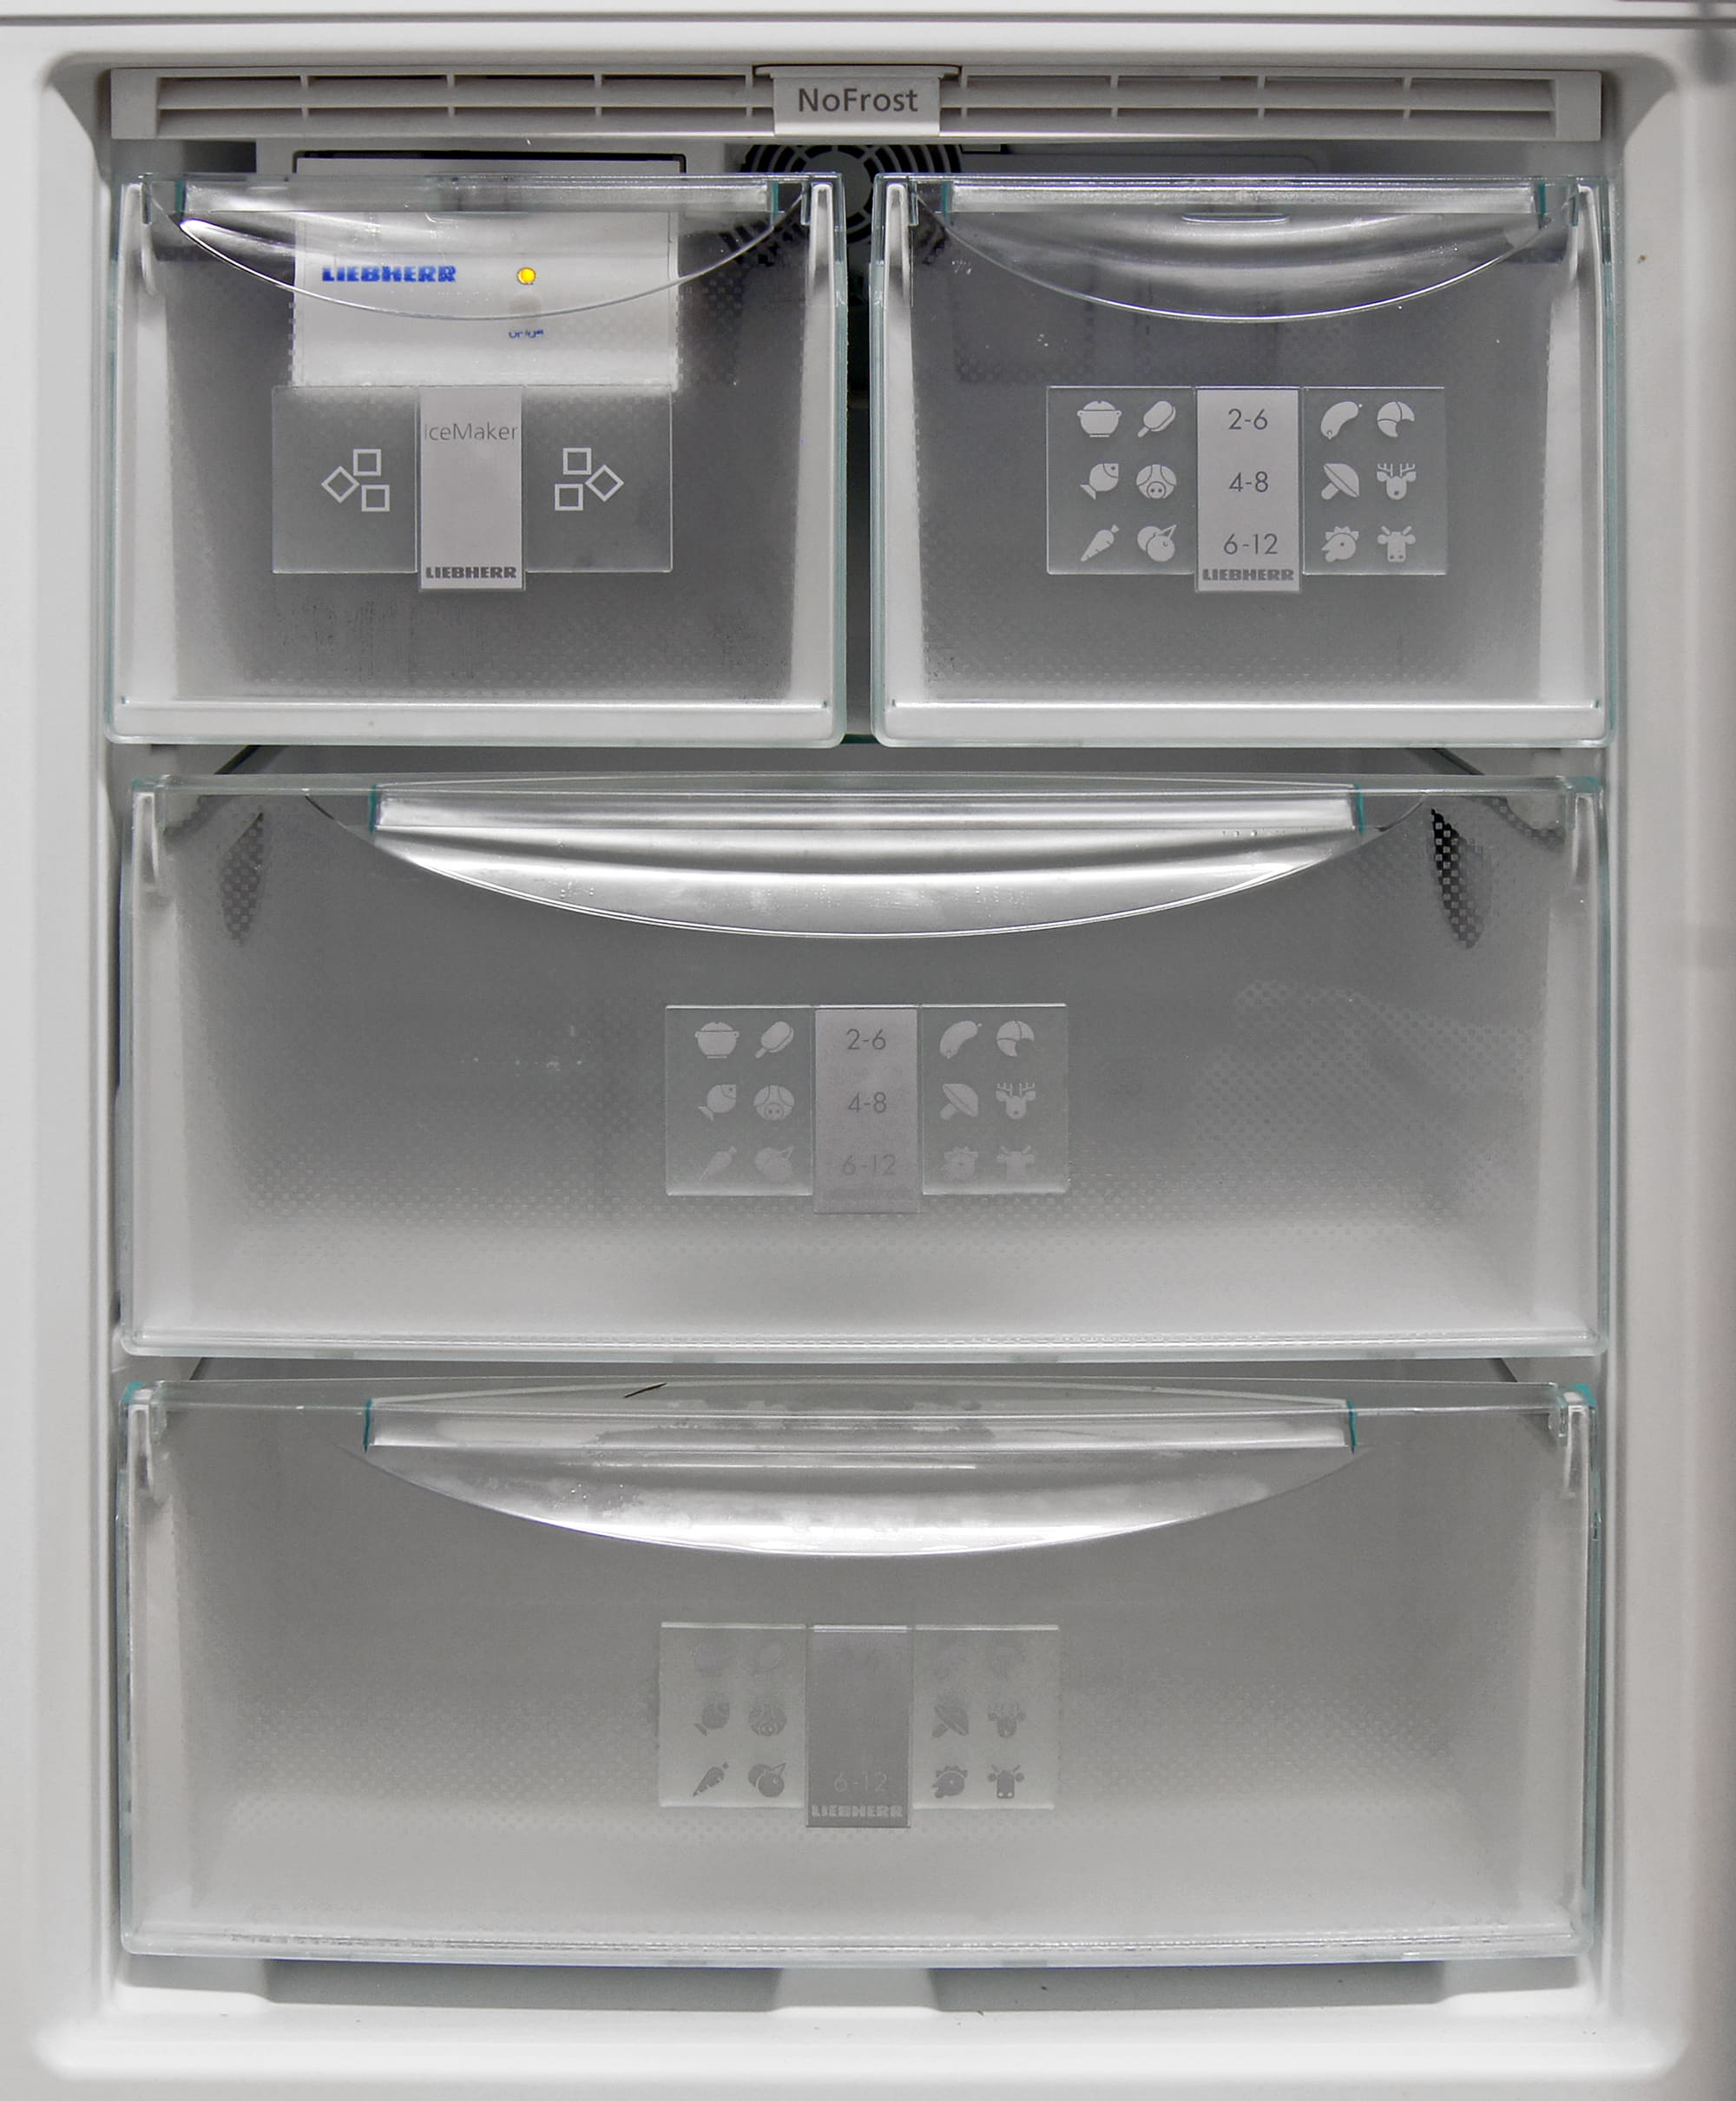 Assorted drawers are all removable, with glass shelves hidden between each level inside the Liebherr CS1360's freezer for alternative storage options